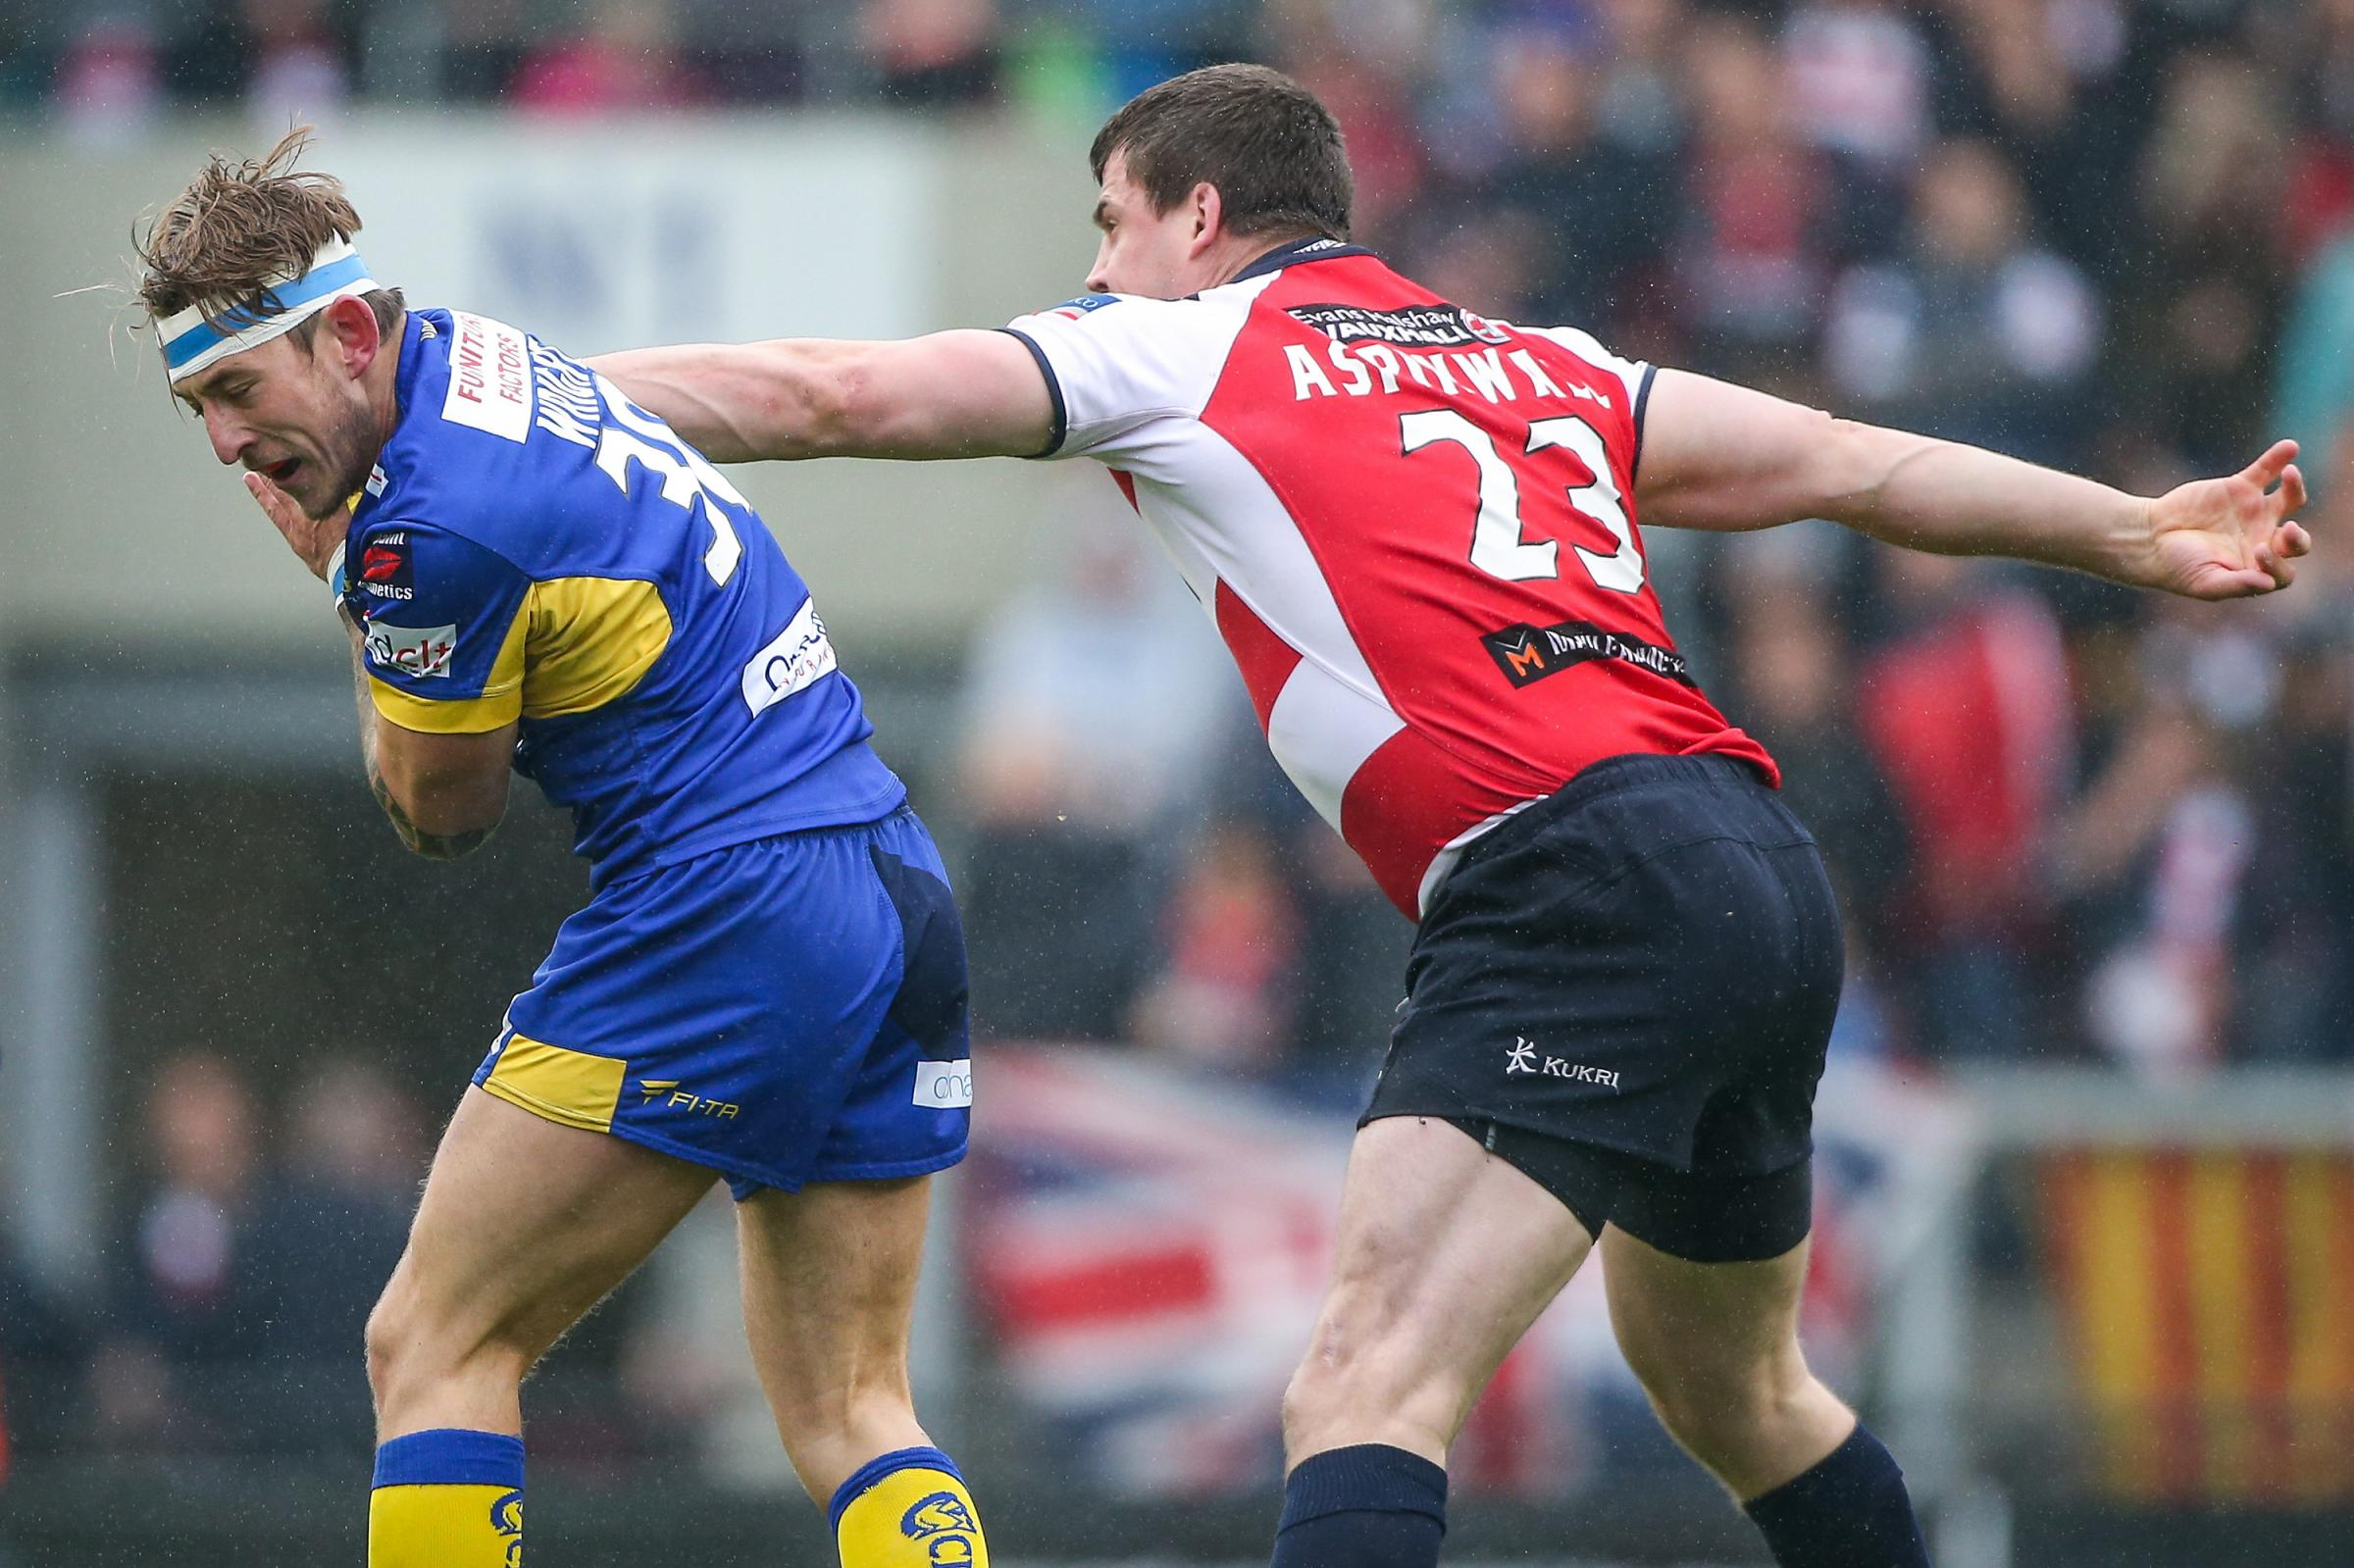 Ryan Wright, pictured left in action for Doncaster against Leigh, has signed for Keighley Cougars